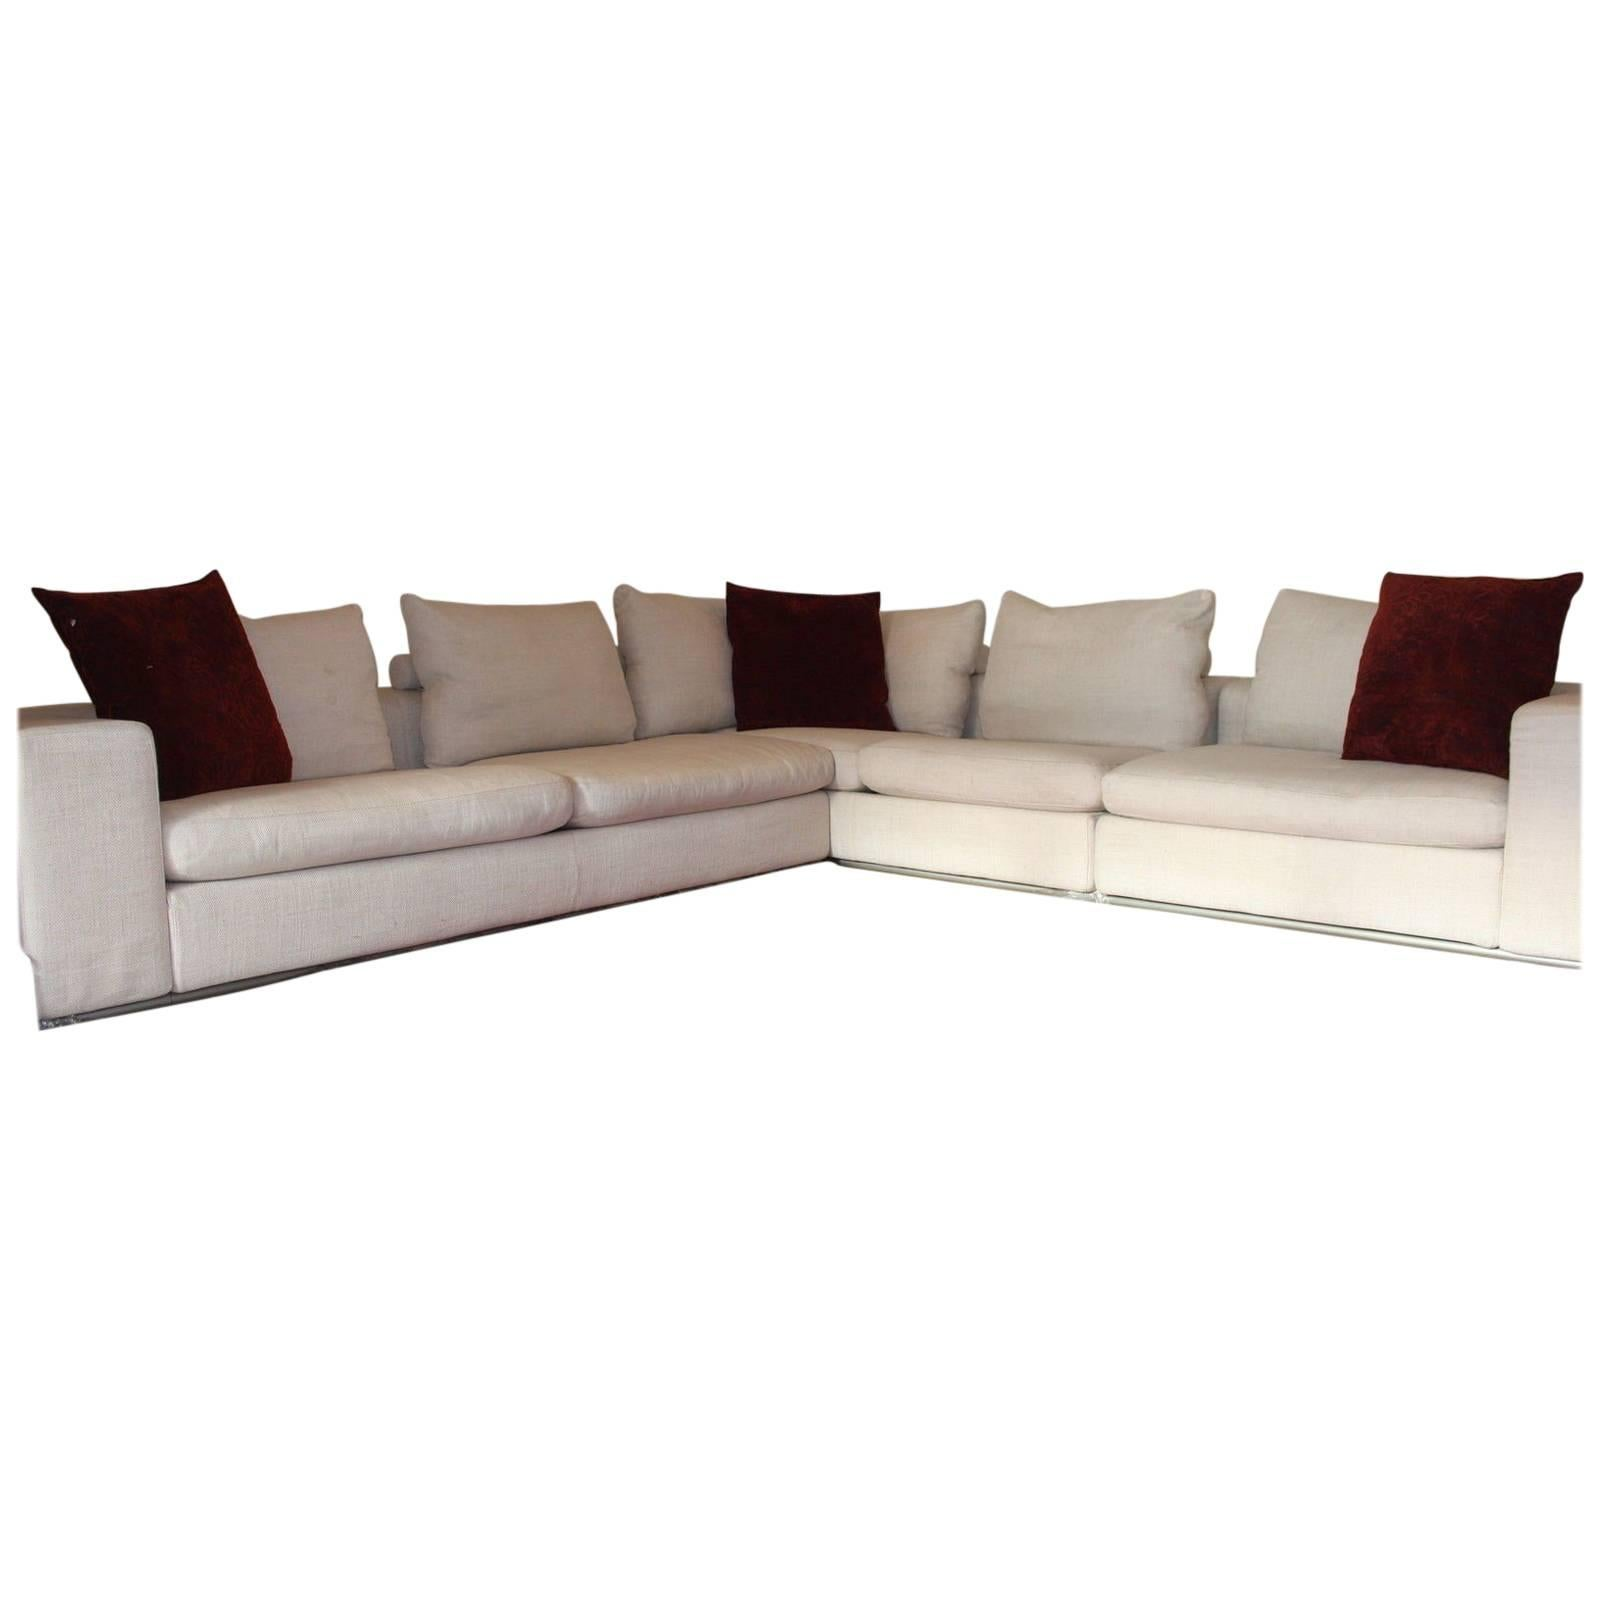 flexform modular sectional sofa suite by antonio citterio by harrods 1